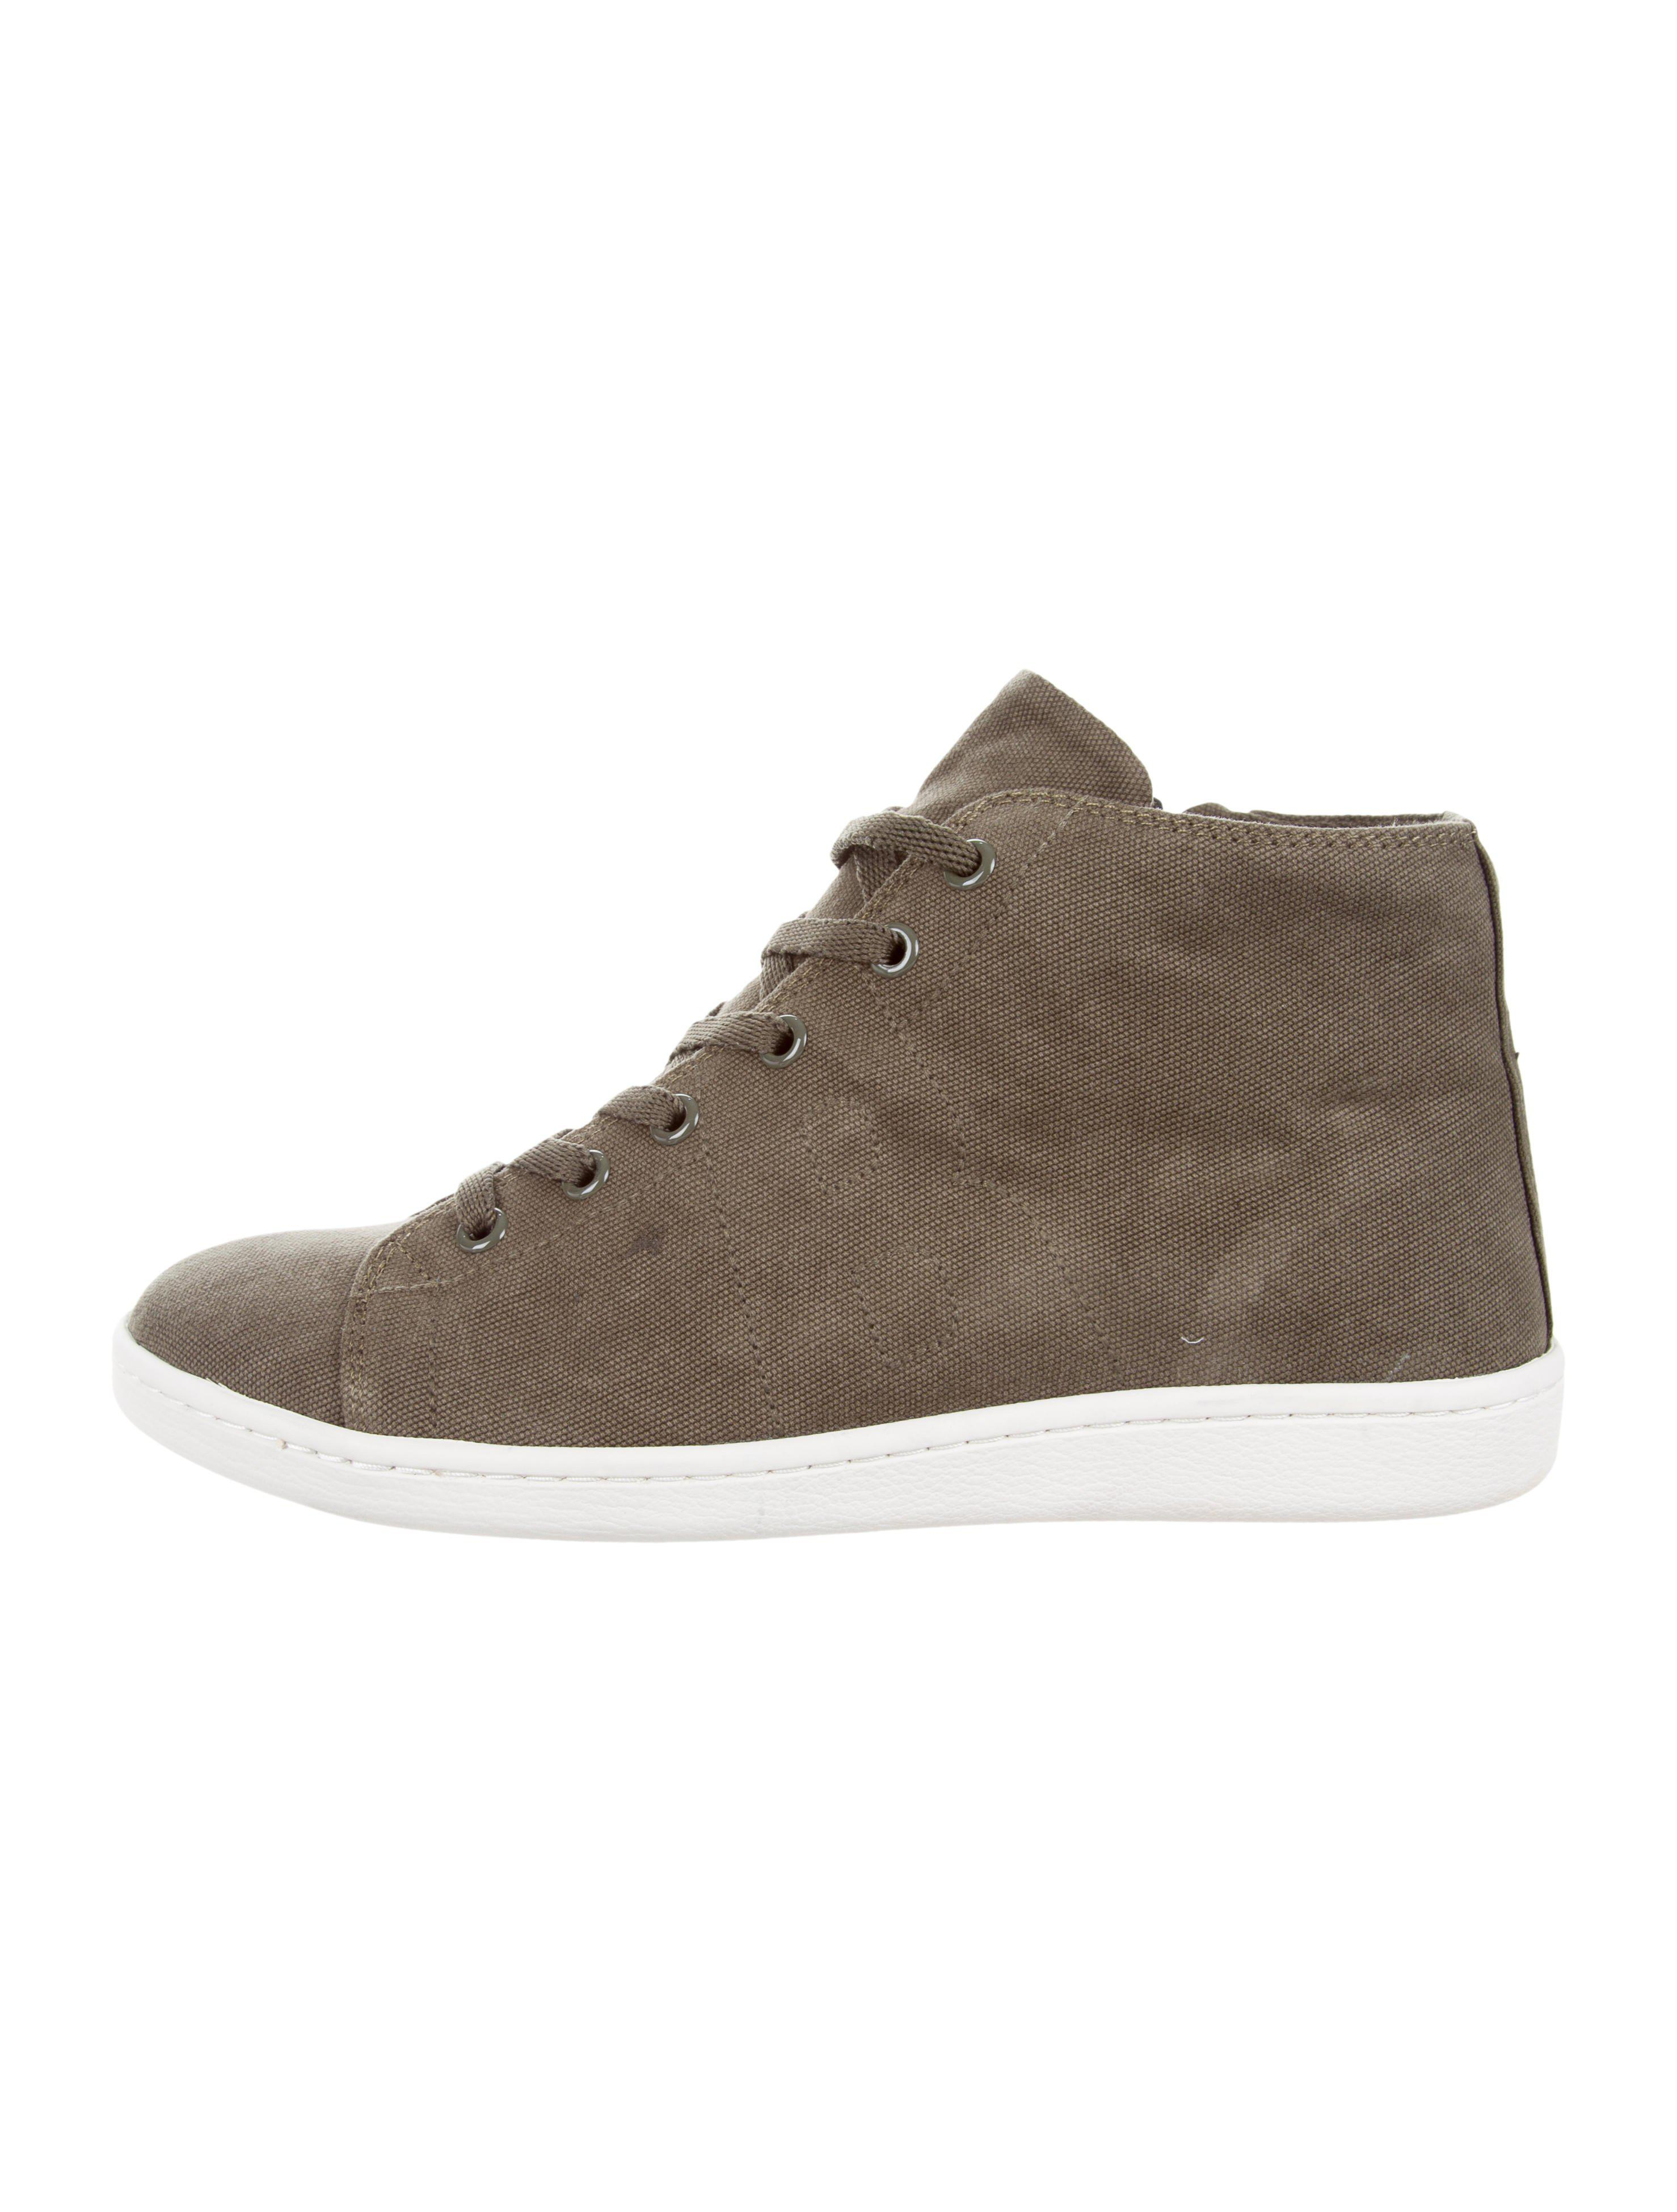 Anine Bing Suede High-Top Sneakers w/ Tags quality free shipping for sale KncN0Q